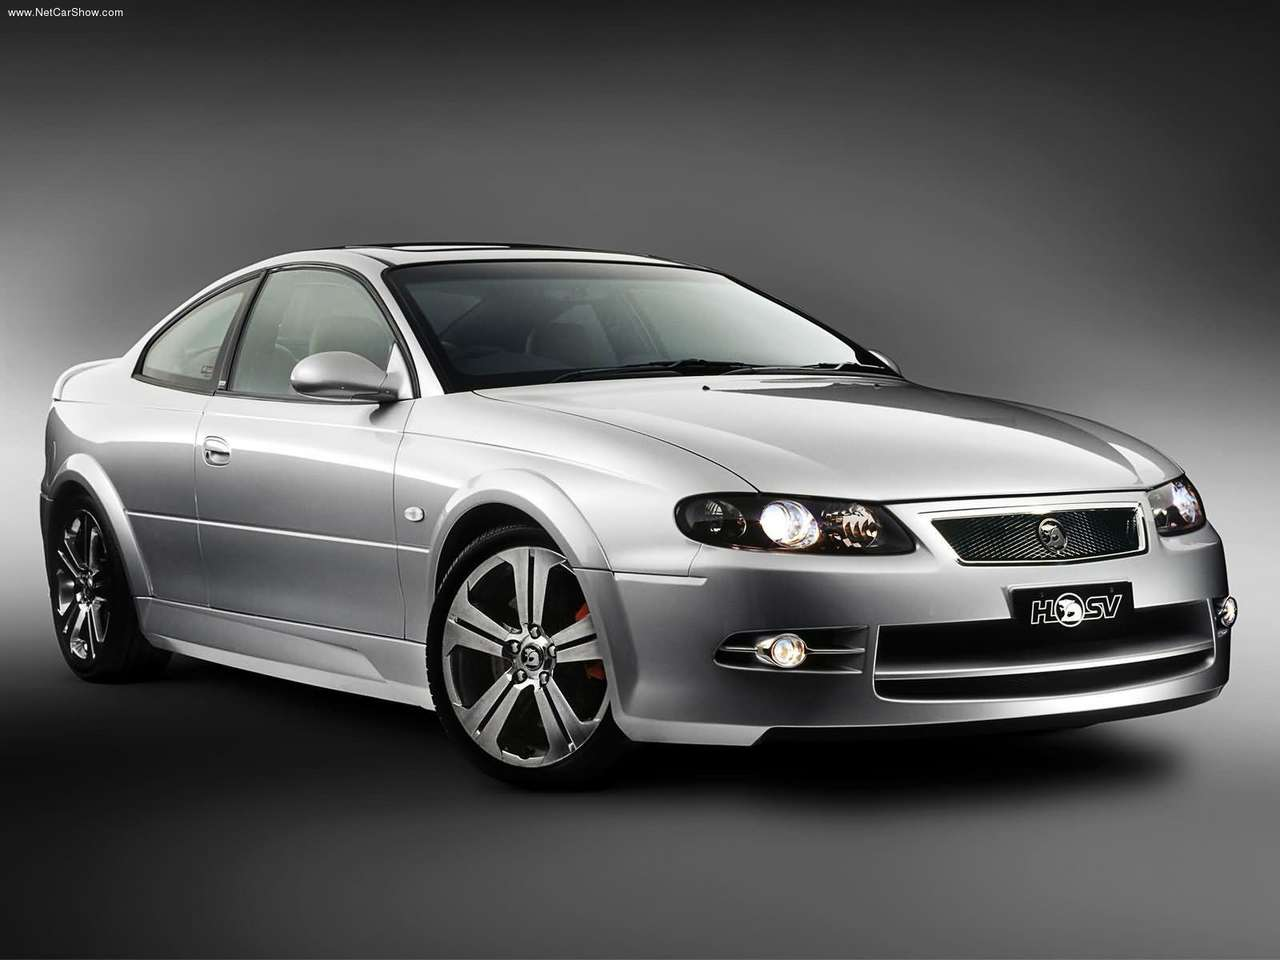 Holden coupe photo - 9